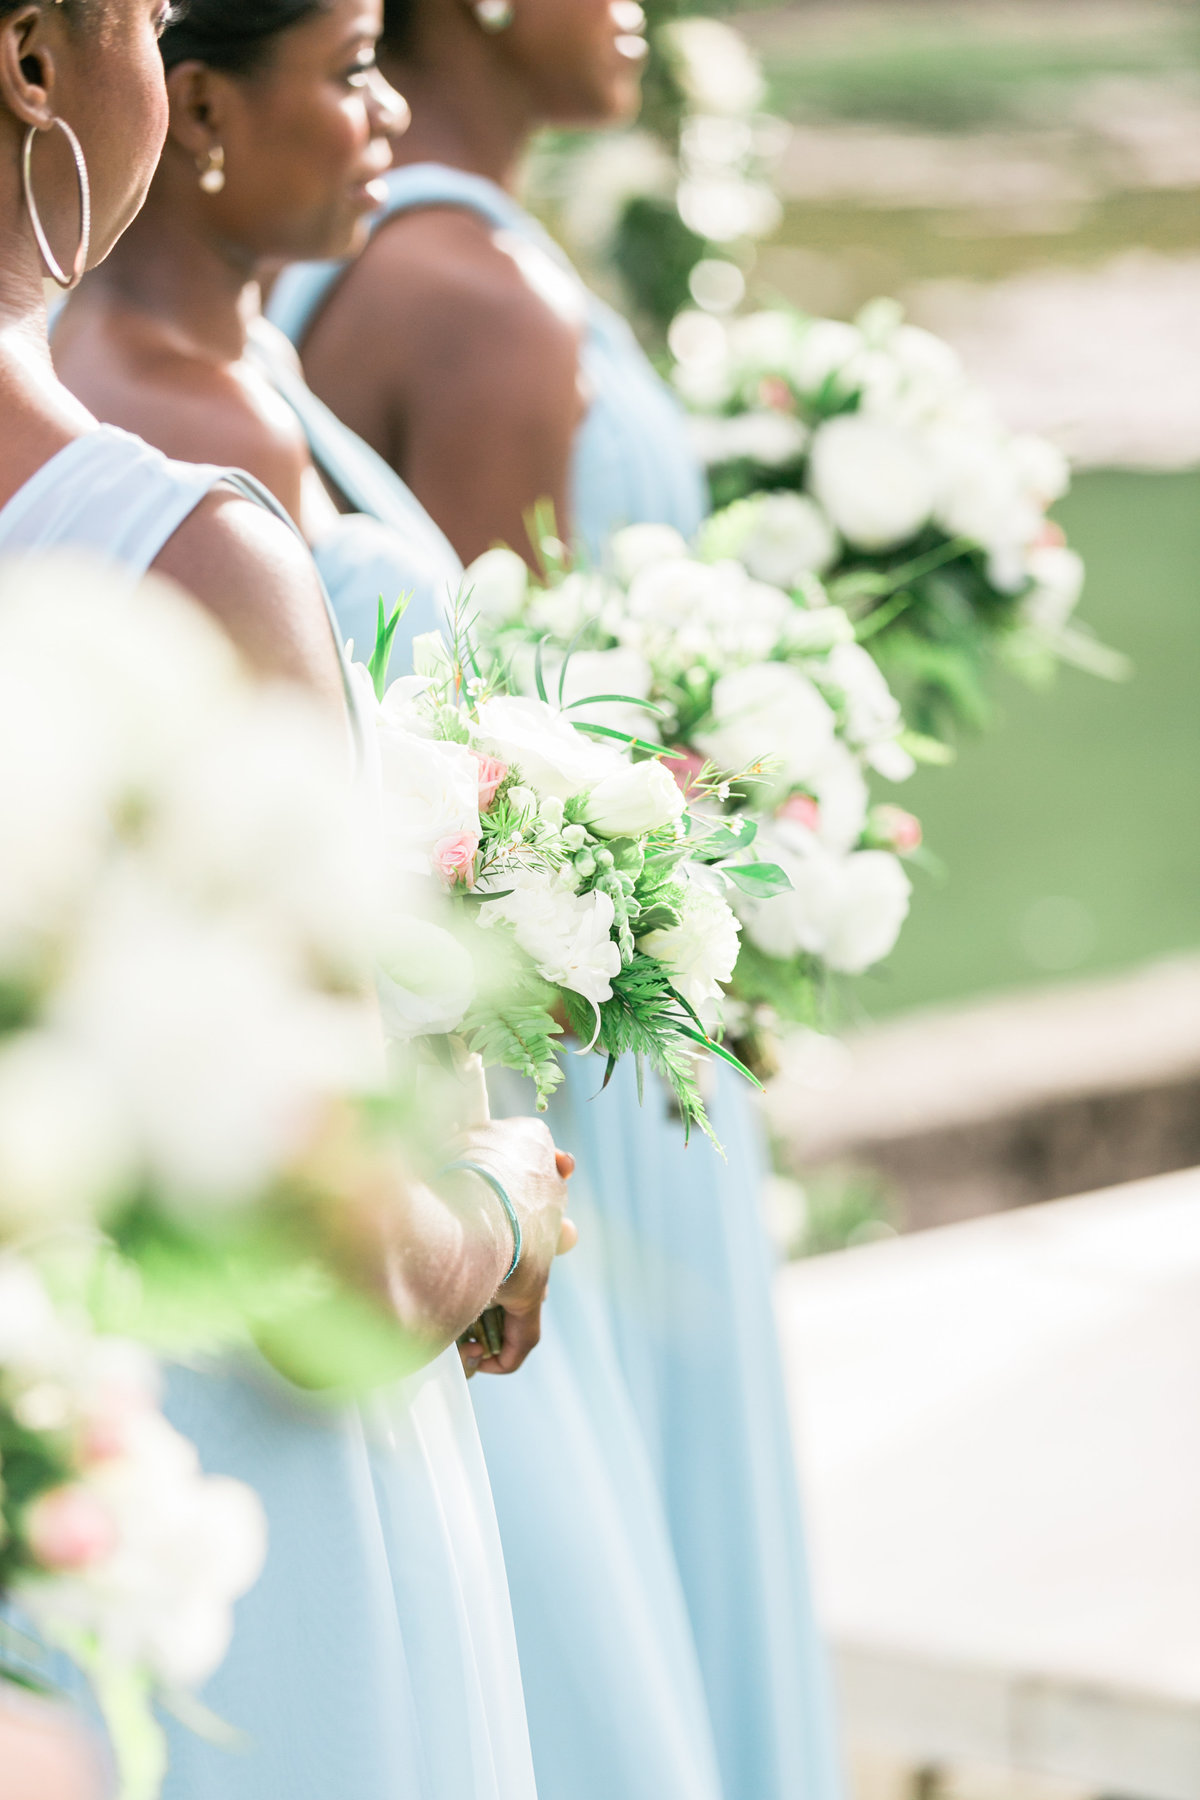 White and green bridesmaids bouquets